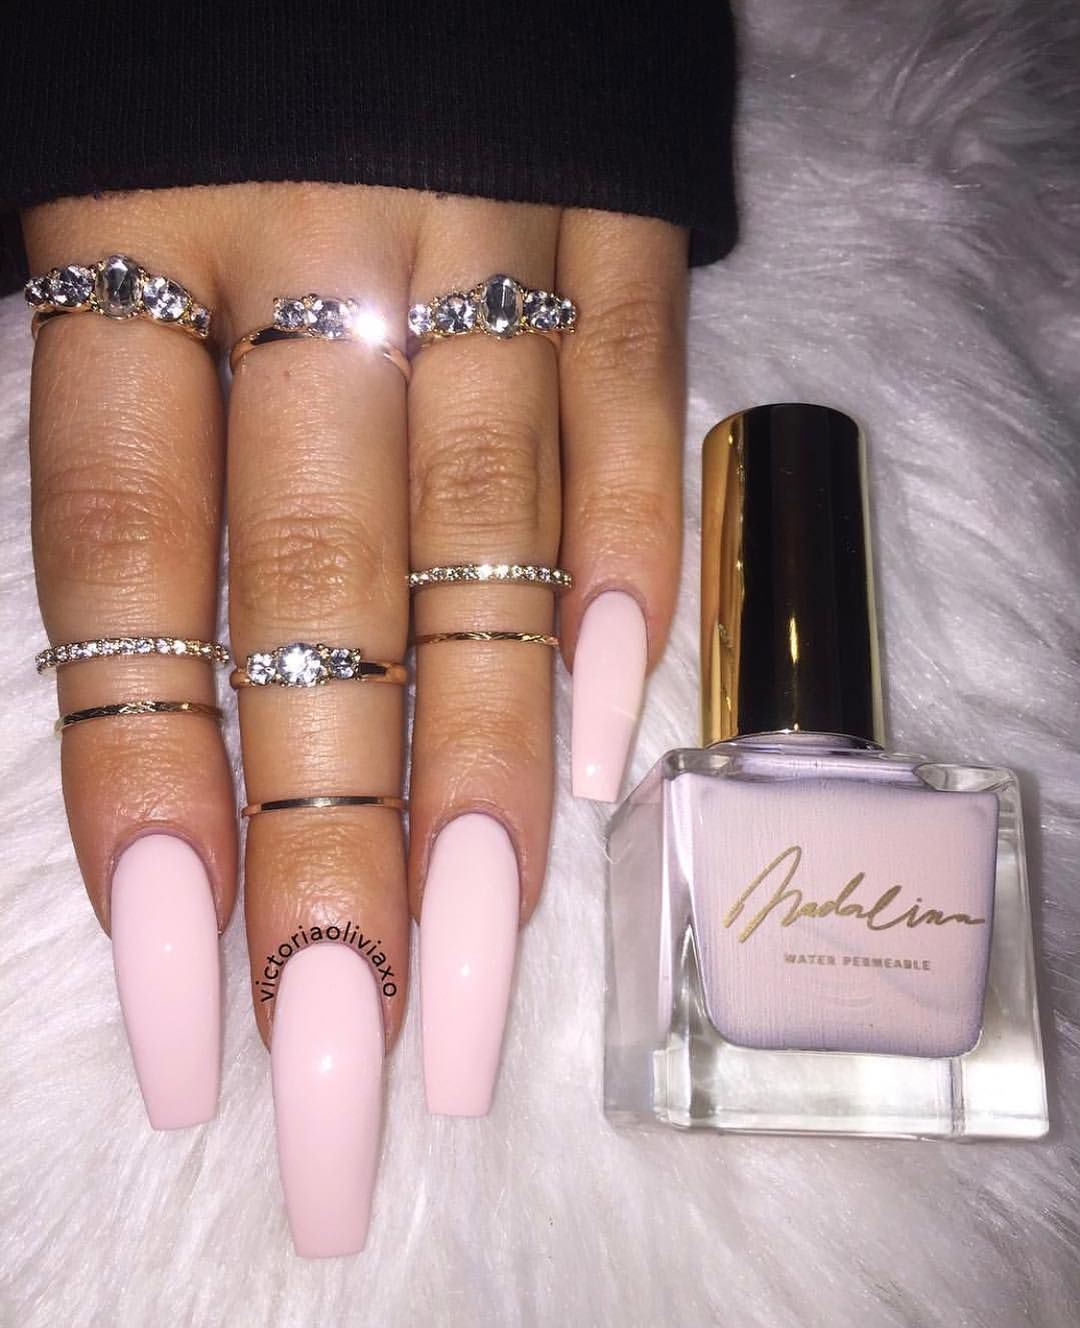 Didi With Flash And We Are Just Obsessing Over Victoriaoliviaxo Nails Stunning Nadalinanails Nails Best Acrylic Nails Cute Acrylic Nails